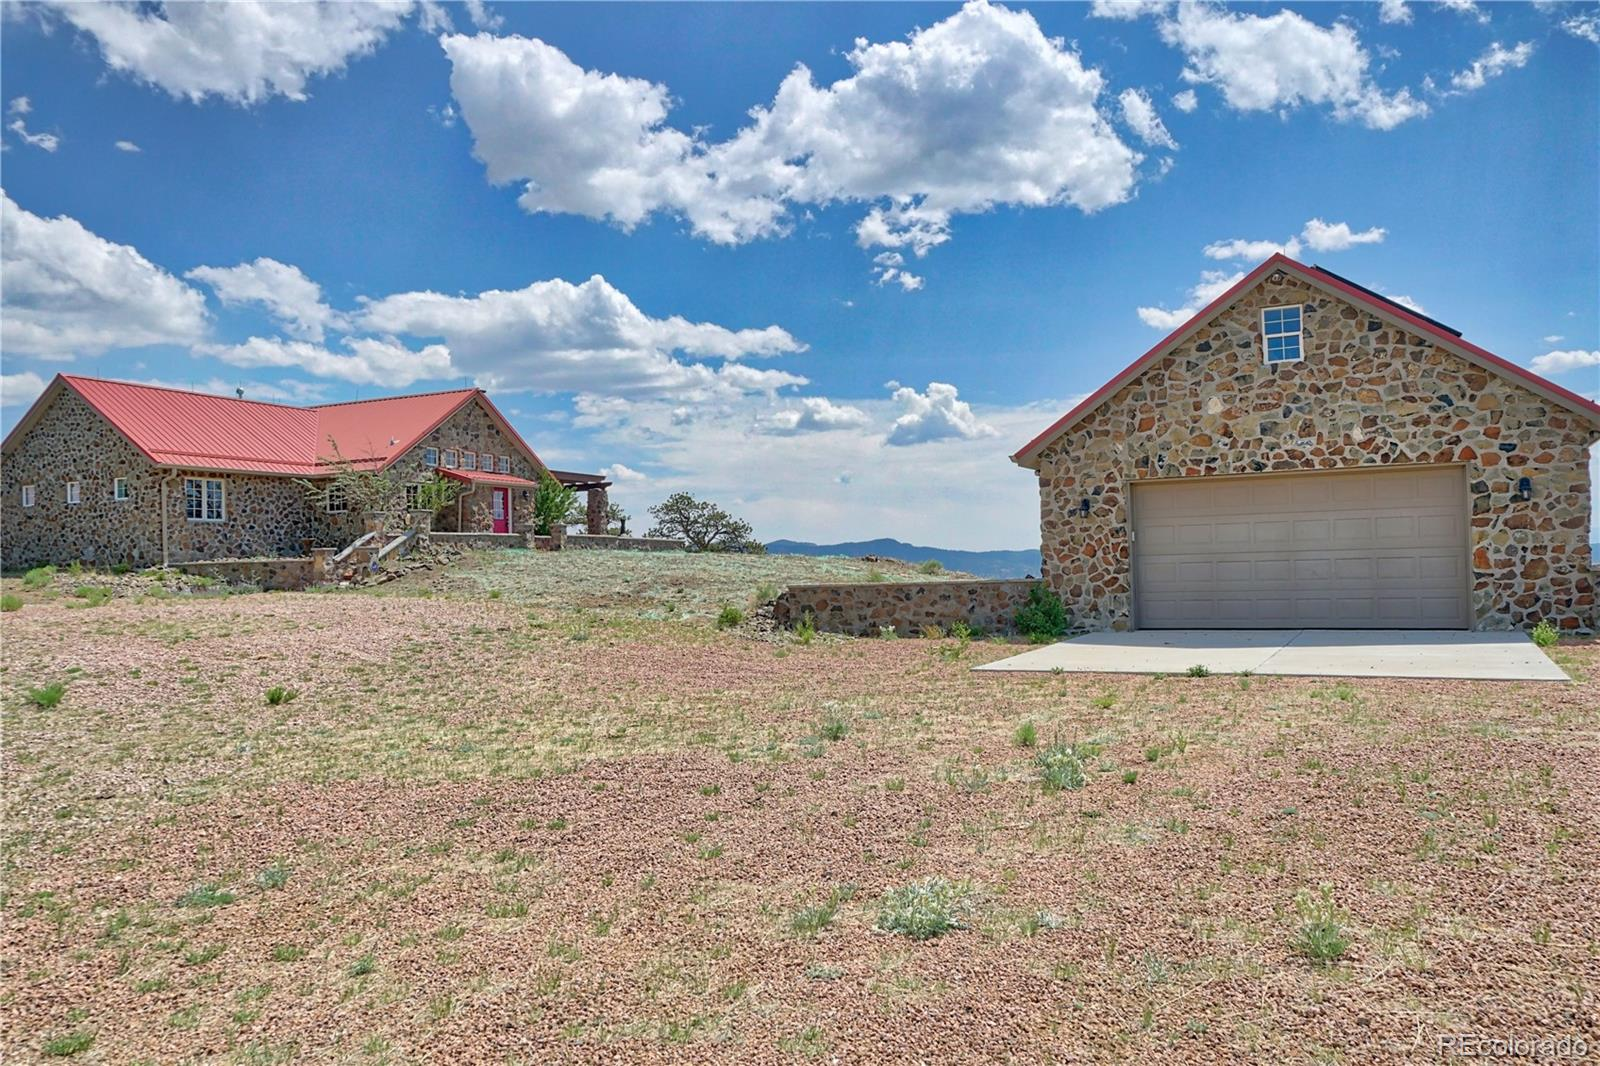 """Properties offering this many surrounding recreational opportunities and views, combined with the right combination of improvements, don't come along often. The 3-bedroom, 3 bathroom home is located on 156-acres and was fully renovated in 2012. Come and take a look at the 360 degree views of 11 Mile Reservoir, Pikes Peak, South Park and the Collegiate Peaks. 11 Mile Reservoir is within 5 minutes. BLM is adjacent to the SW corner of the parcel and adjoins Forest Service lands just to the south.  The ICF construction and stone exterior make the home very energy efficient. The detached garage is heated and contains a tandem bay for vehicles and an RV/trailer. Heat and electricity are fully-integrated off-grid sources (solar panels, redundant generator and propane). Spinney Mountain Reservoir and the coveted """"Dream Stream"""" are also within 10 to 15-minute drives. See attached map of surrounding public land and state parks. Existing furniture can be negotiated as part of the sale or removed."""